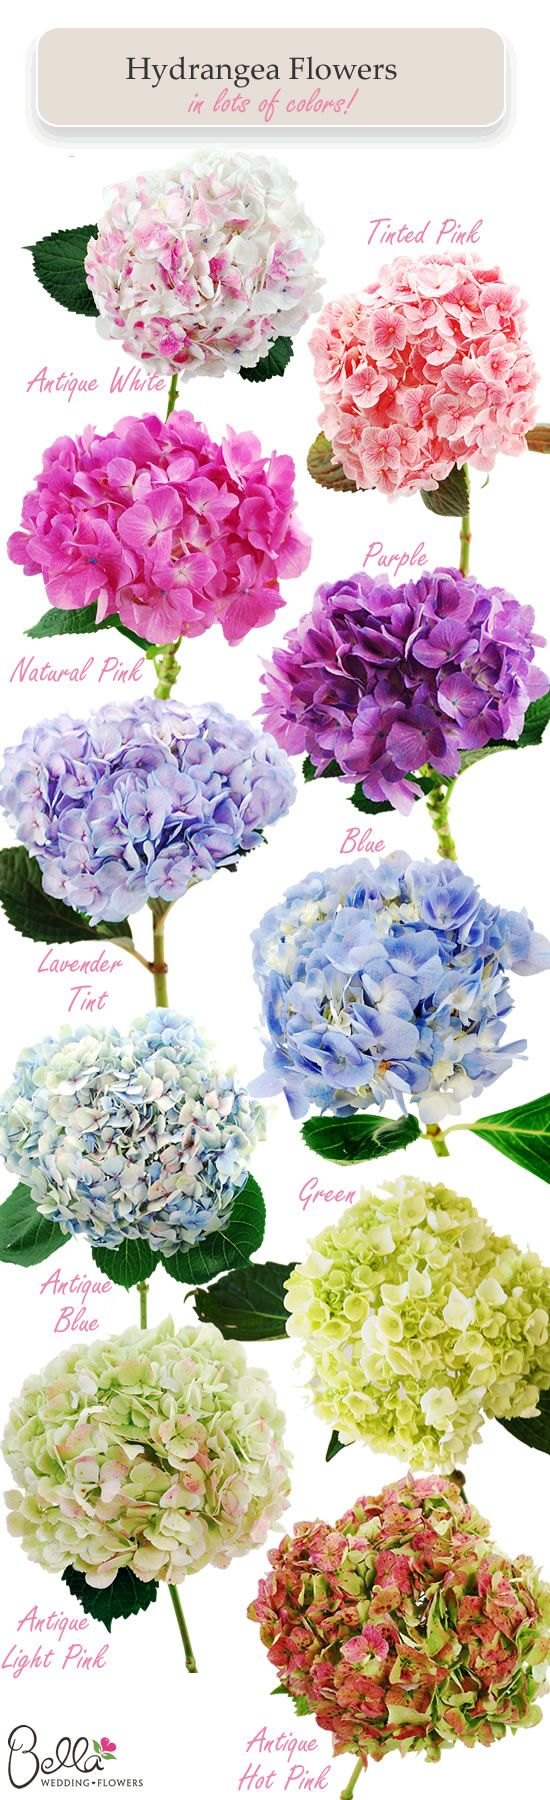 Hydrangea colors... Someone across town has a dark purple one and it is gorgeous! I would love one of those for our yard.: